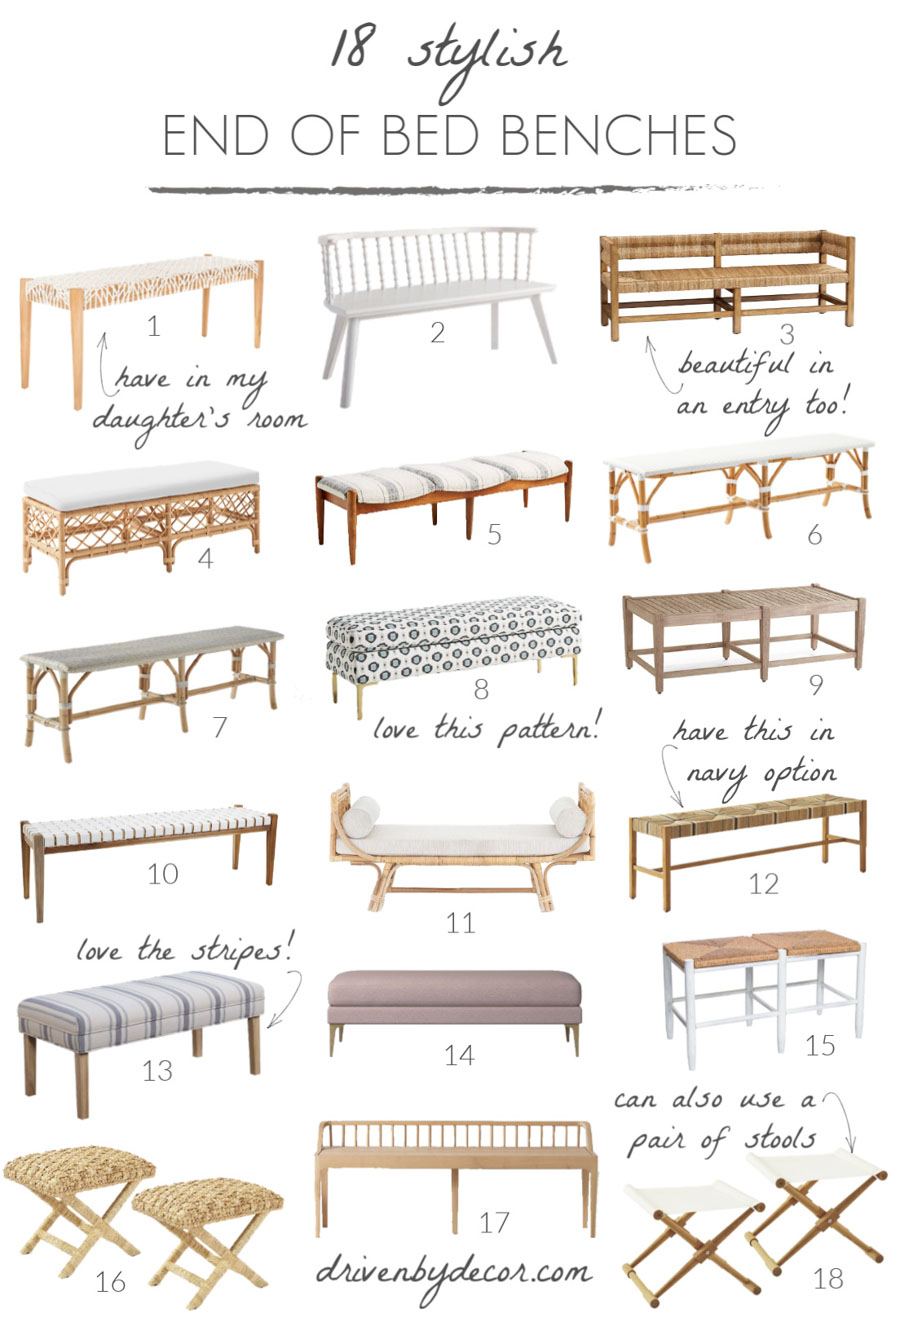 Stylish end of bed bench options - love so many of these!